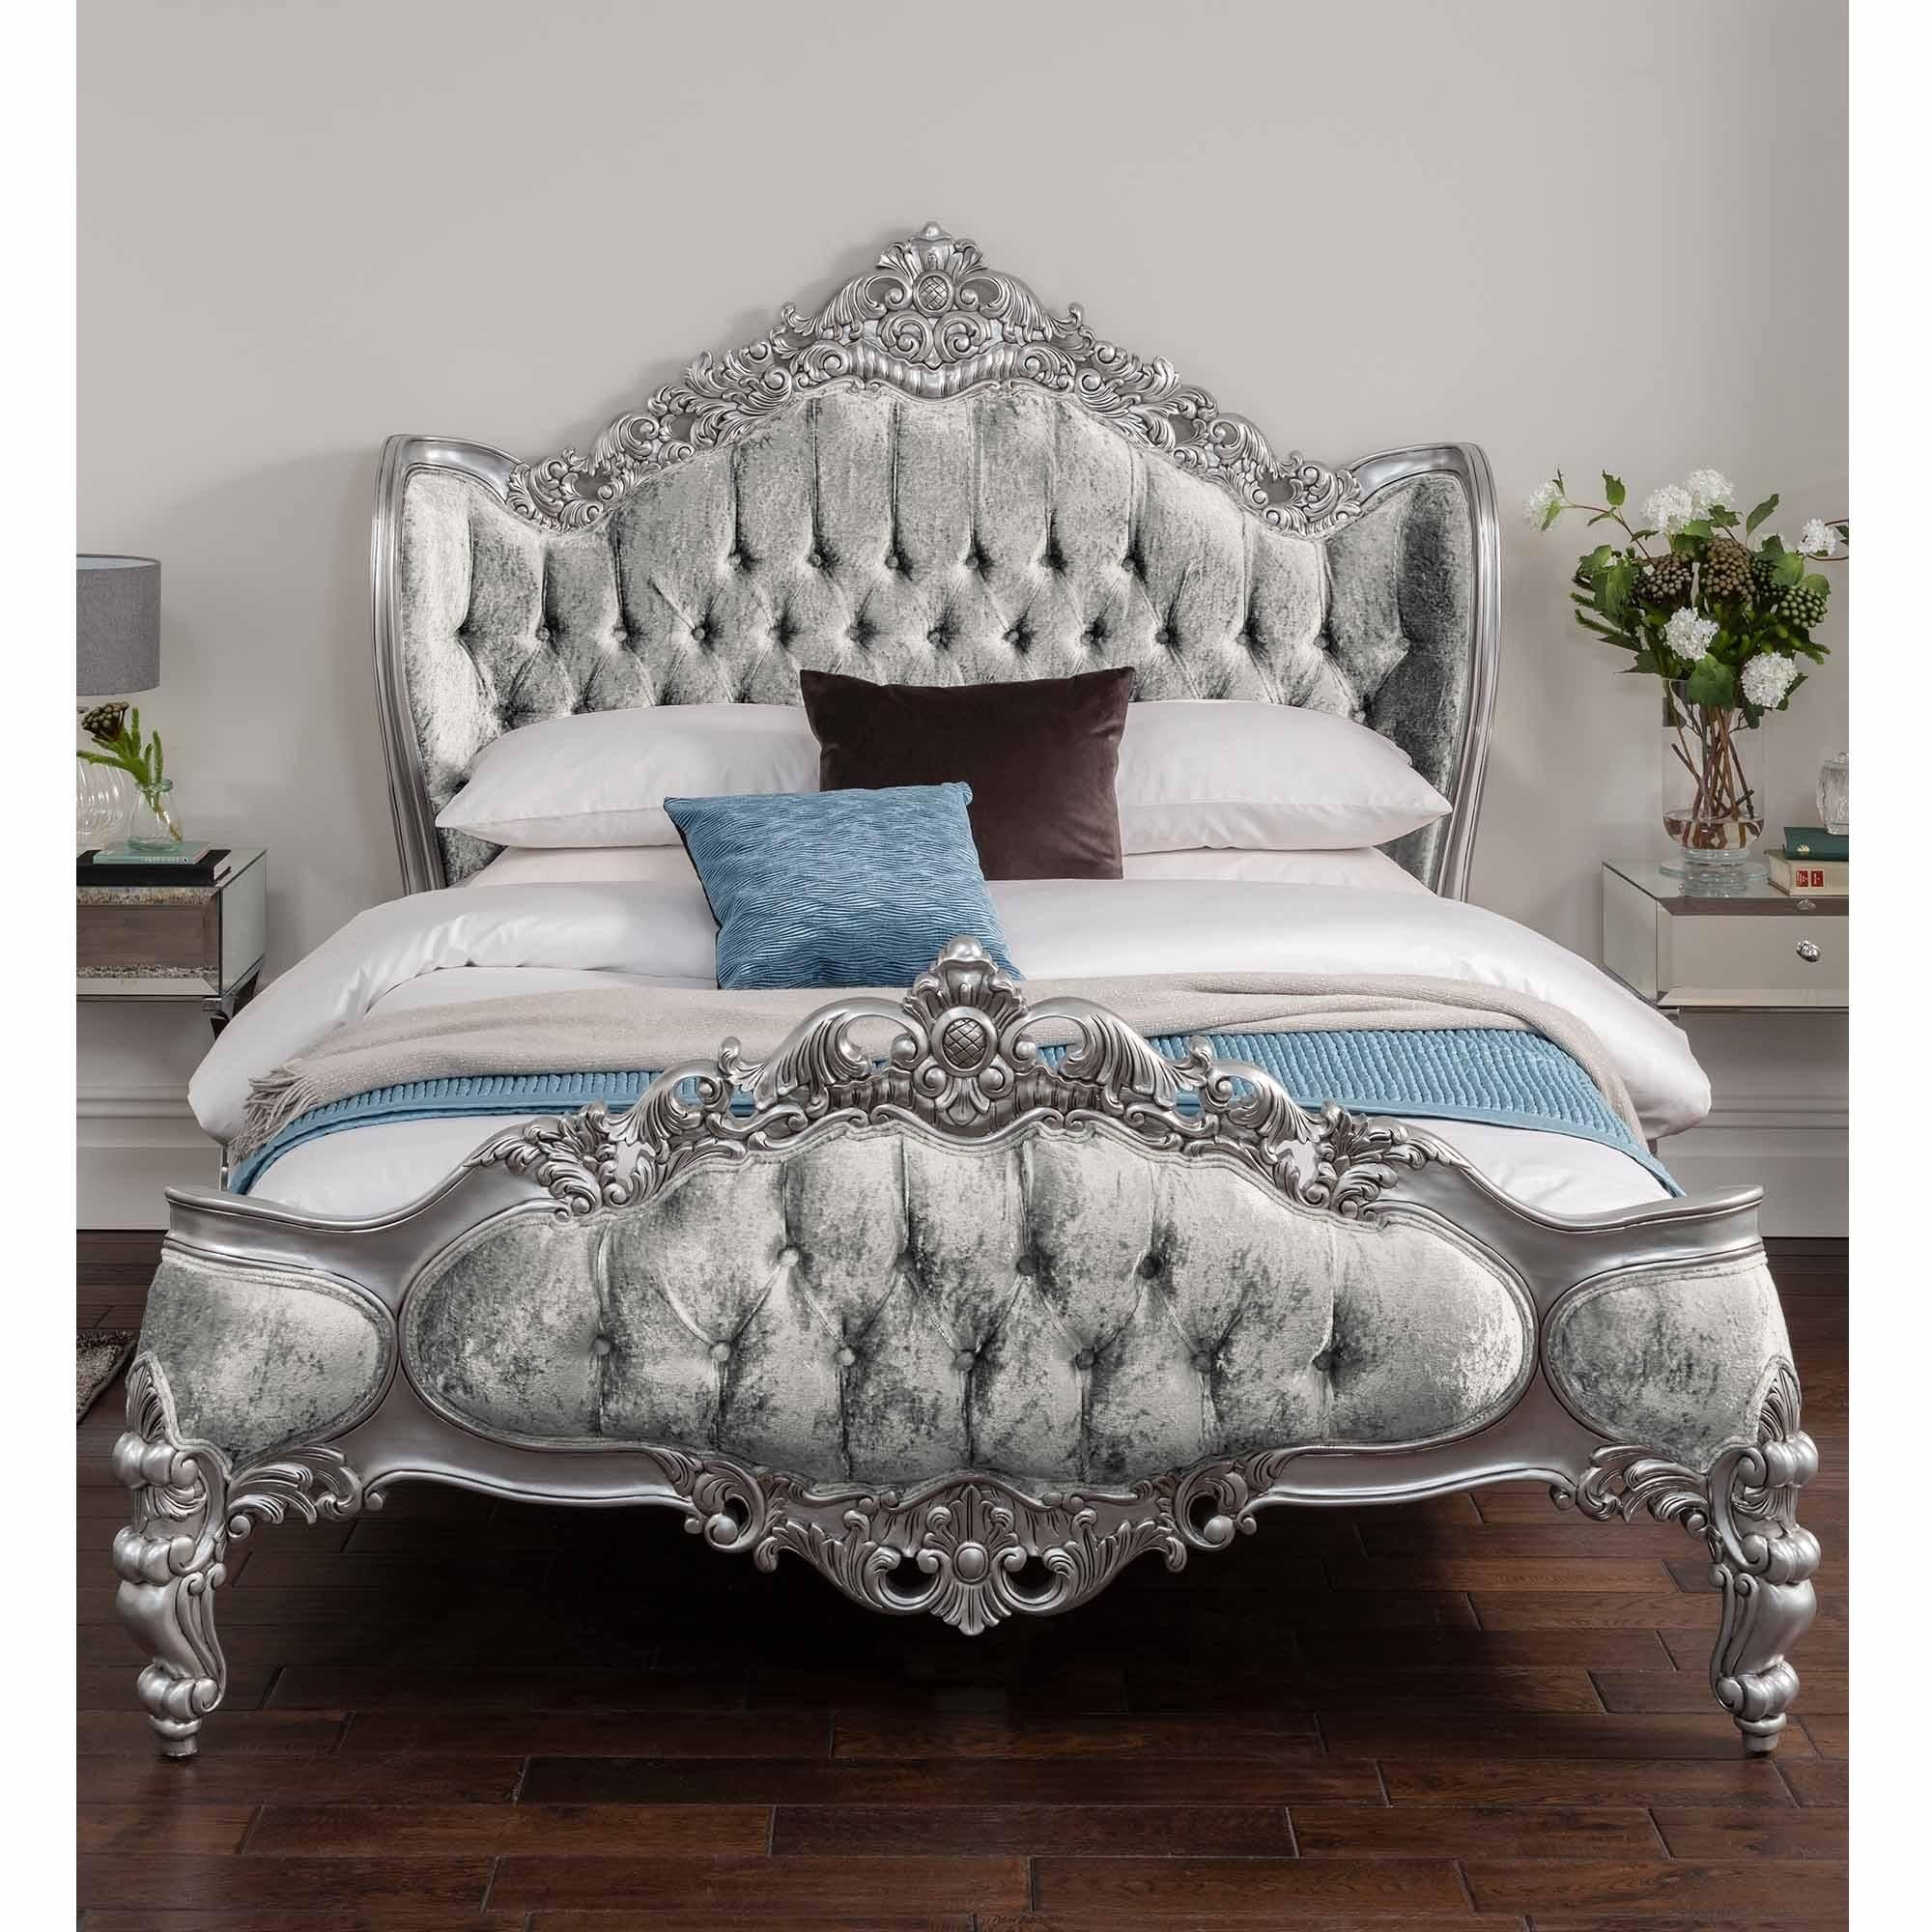 Antique French Style Bed Crushed Velvet French Beds Online Now